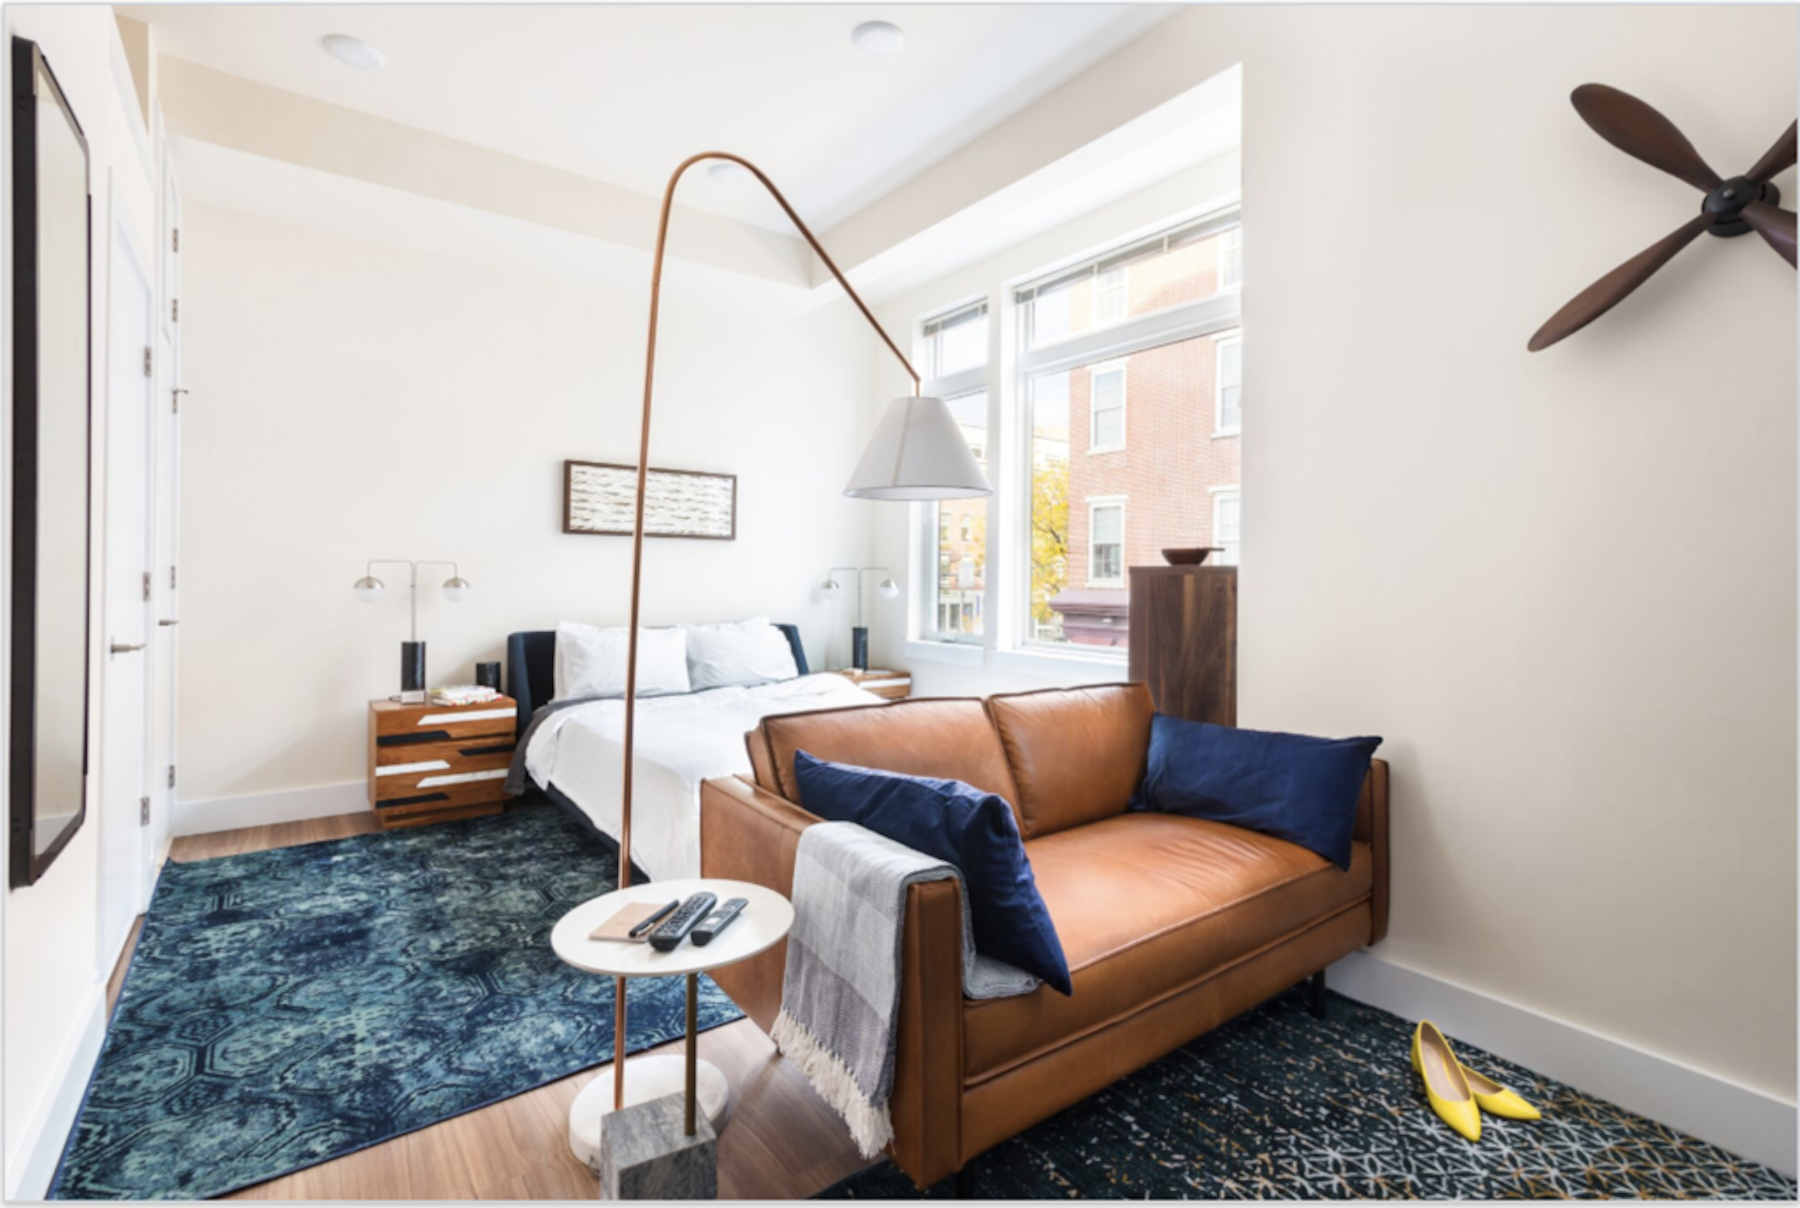 Upscale apartment service Stayawhile launches in Philly - Curbed ...